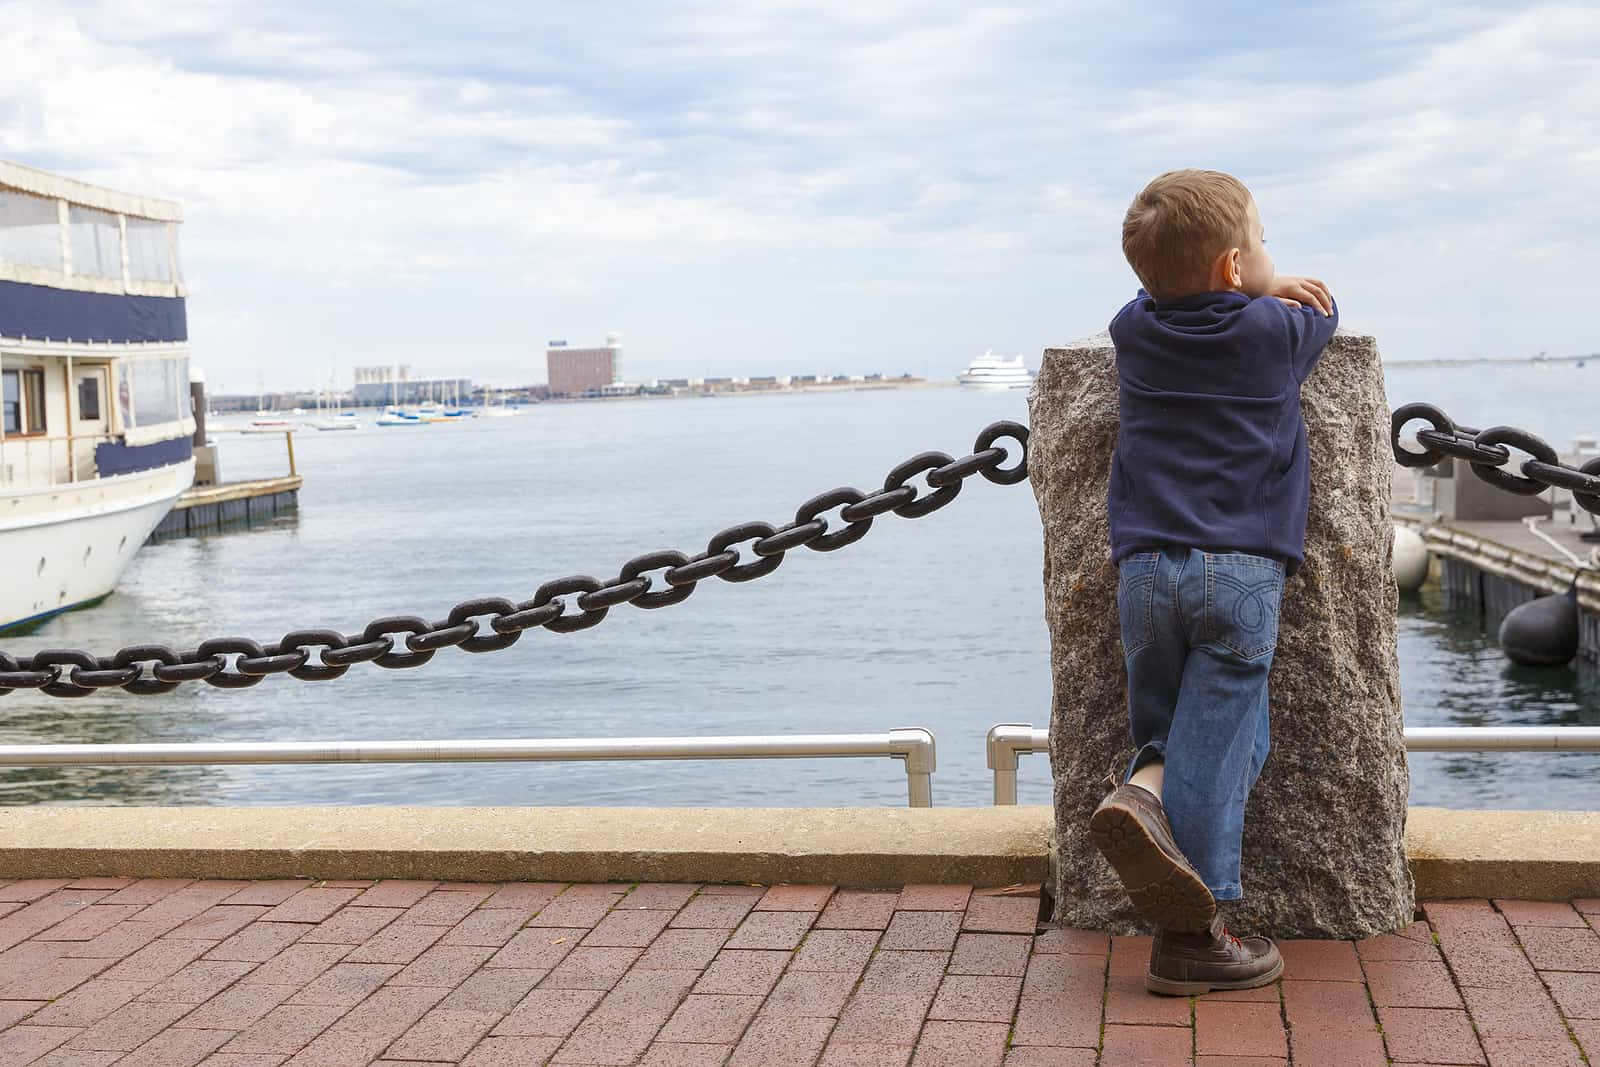 things to do in boston with kids header image - boy in harbor. little kid looking at ships and sea.